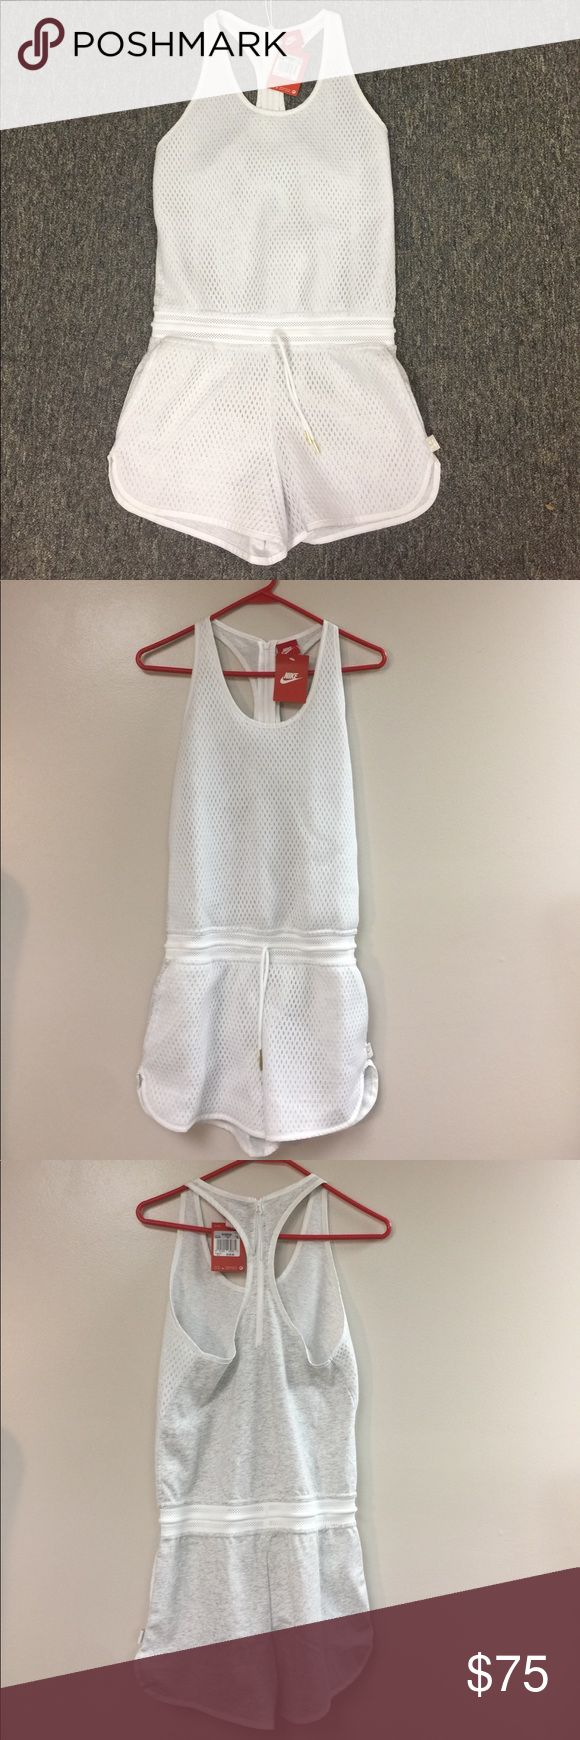 "Nike XS white gray tennis shorts jumpsuit romper One piece Nike XS women's tennis romper in gray and white. Zips up the back, elastic drawstring at waist, pockets. Breathable mesh fabric. Brand new. Face of body fabric 100% cotton, back of body fabric polyester. Machine wash cold, tumble dry low. Size extra small. Pit to pit measurement is 16 inches (32"" bust) waist measurement 30 inches, length 31 inches. Nike Shorts"